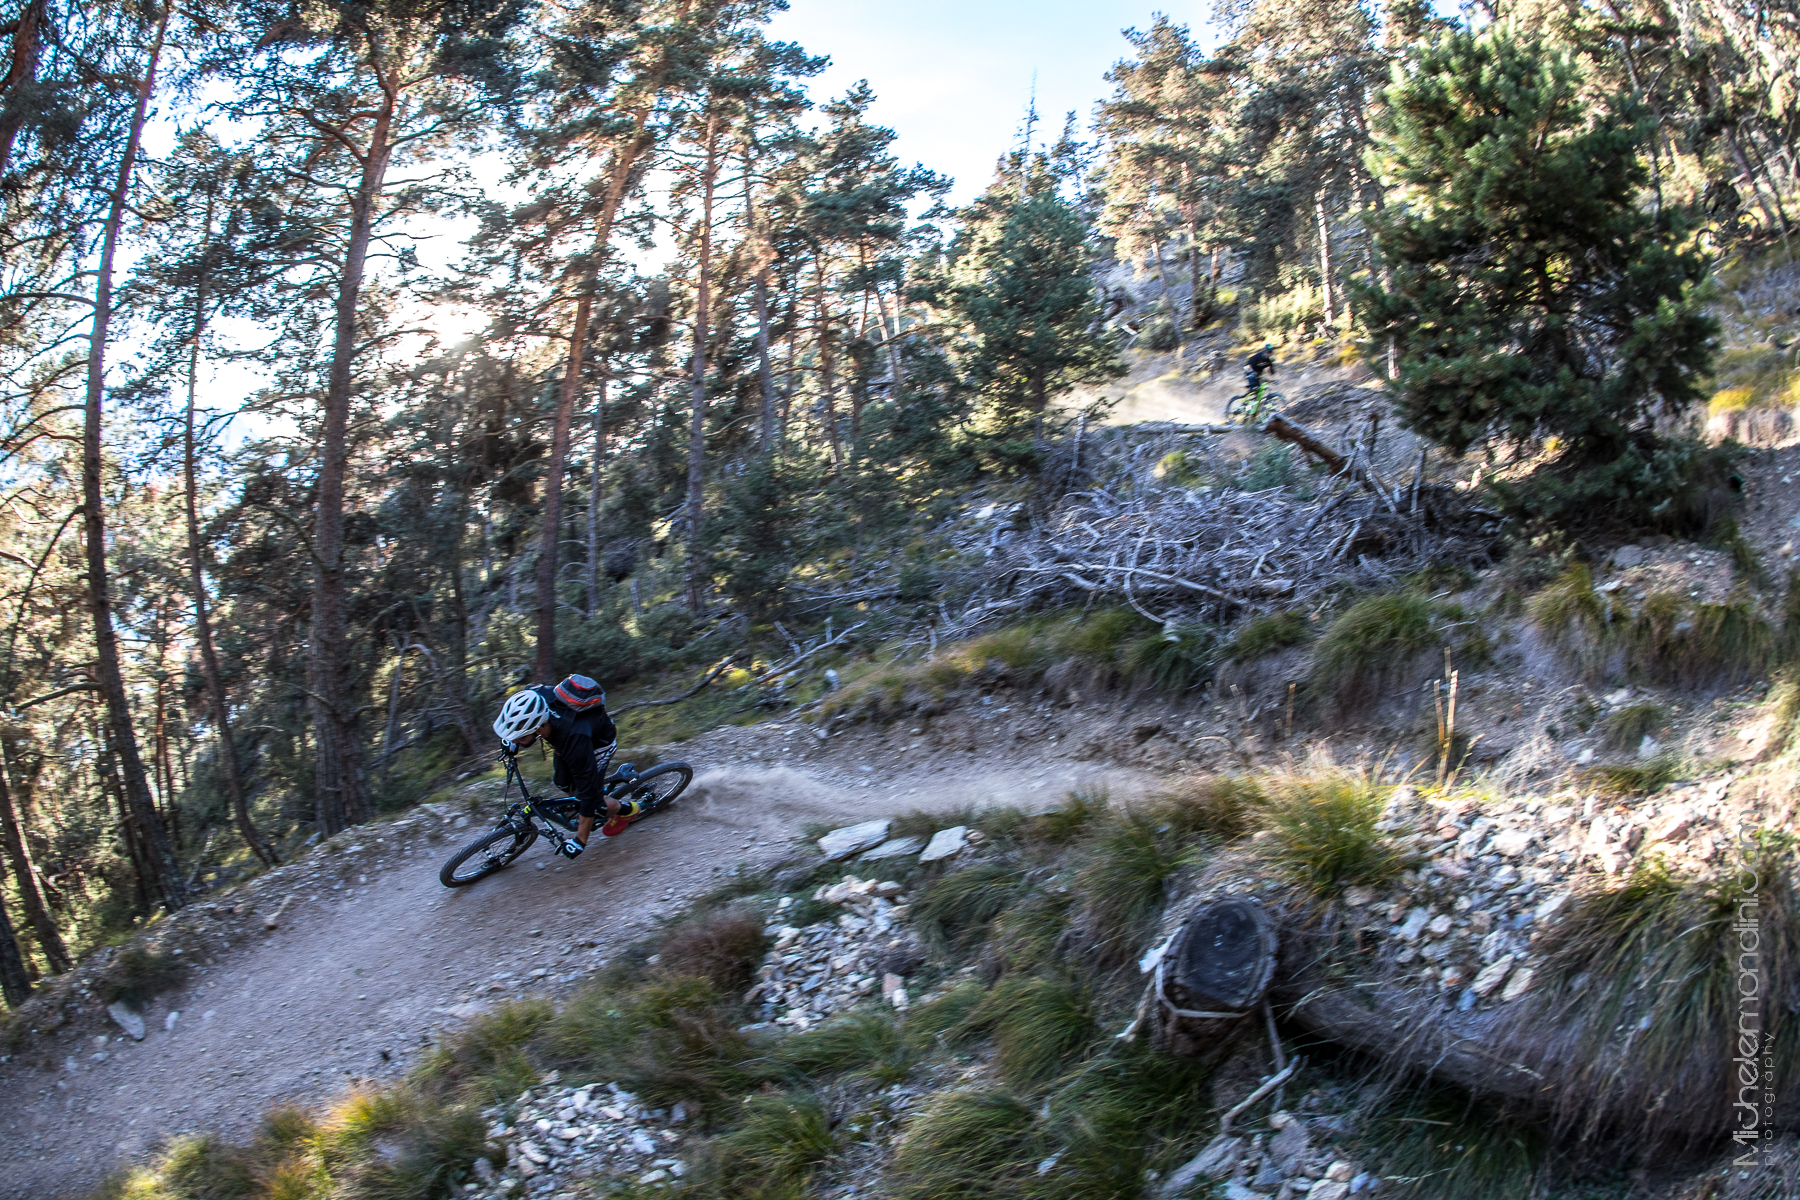 Shredding Vinschgau trails - Michele Mondini